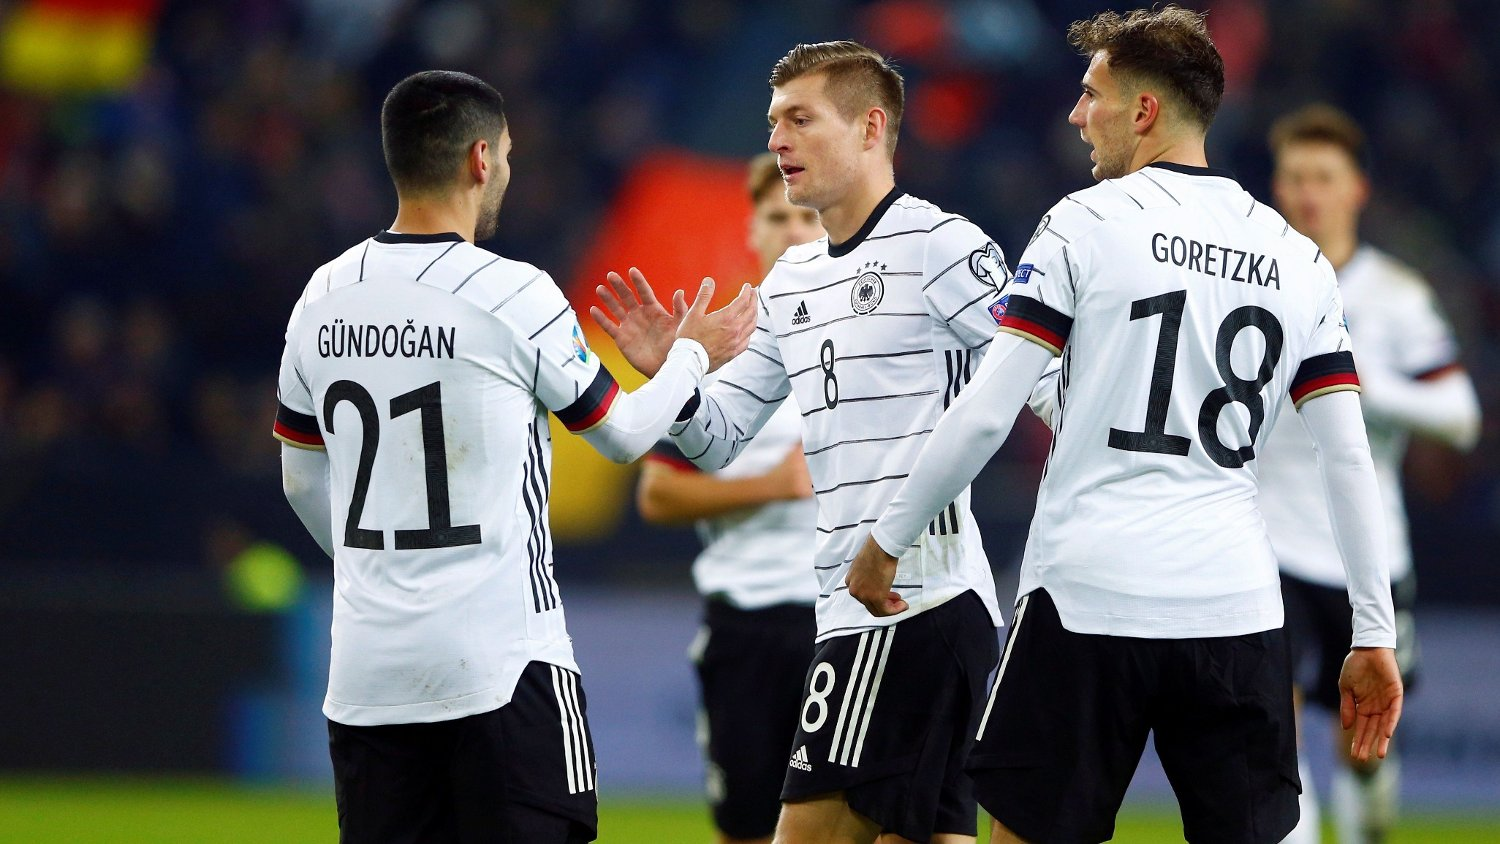 Soccer Football - Euro 2020 Qualifier - Group C - Germany v Belarus - Borussia-Park, Moenchengladbach, Germany - November 16, 2019 Germany's Toni Kroos celebrates scoring their third goal with team mates REUTERS/Thilo Schmuelgen DFL regulations prohibit any use of photographs as image sequences and/or quasi-video